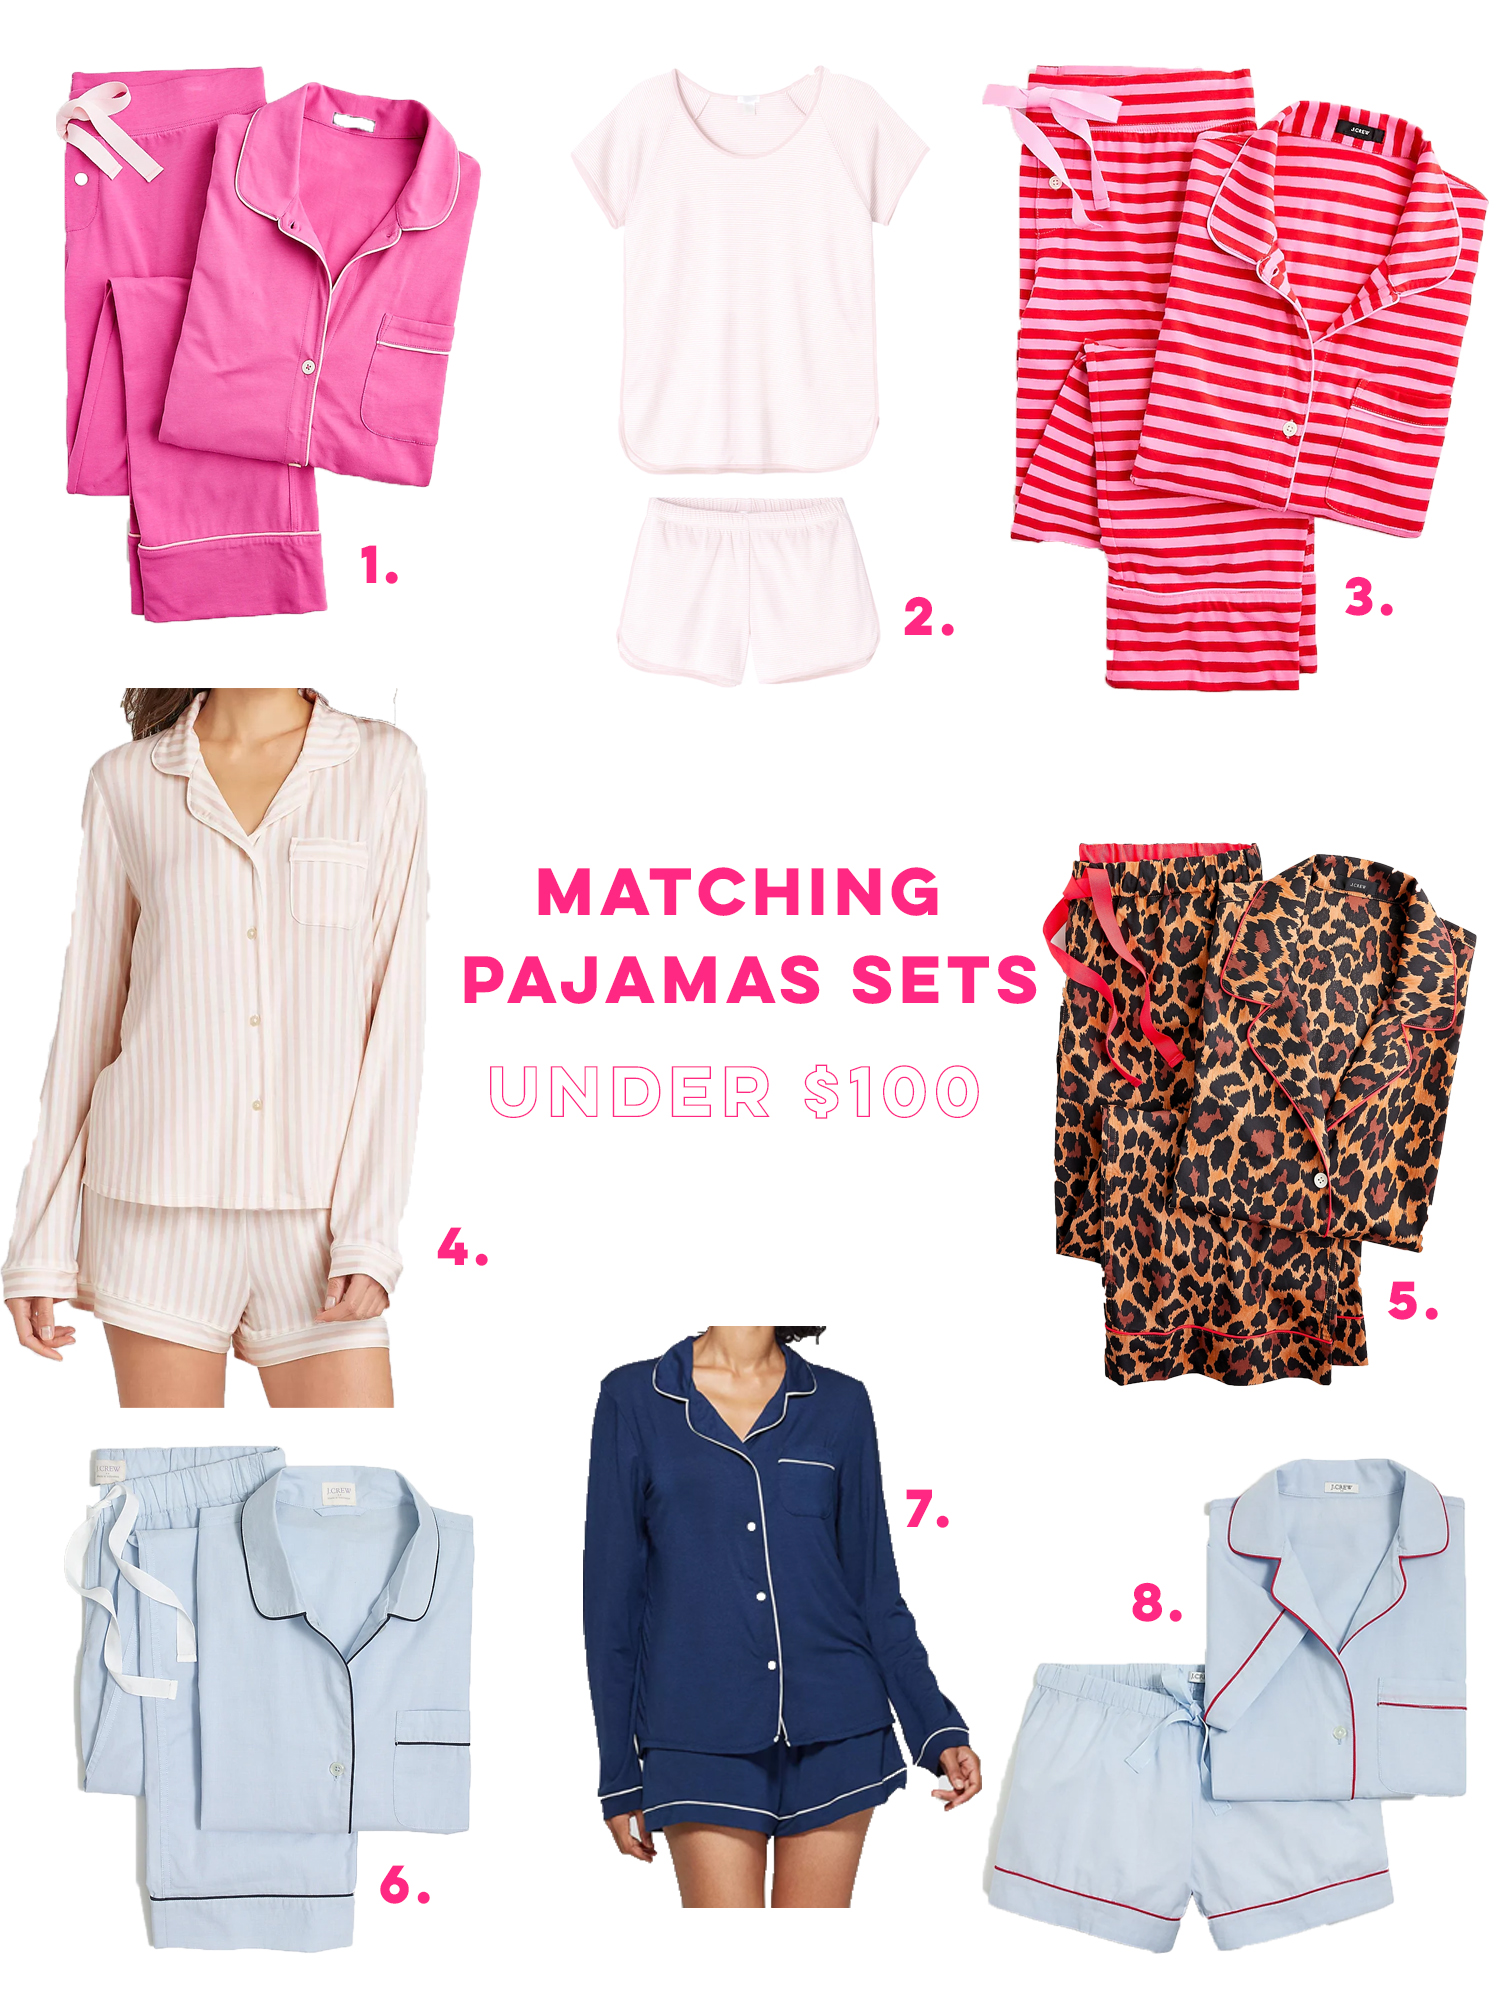 Cozy Matching Pajama Sets / J.Crew Factory Pajama Sets / J.Crew Pajama Sets / Cozy Pajamas Comfy / Cozy Pajama Set / Cozy Pajama Comfy / Cozy Pajamas Lazy Day - Sunshine Style, A Florida Based Fashion and Lifestyle Blog